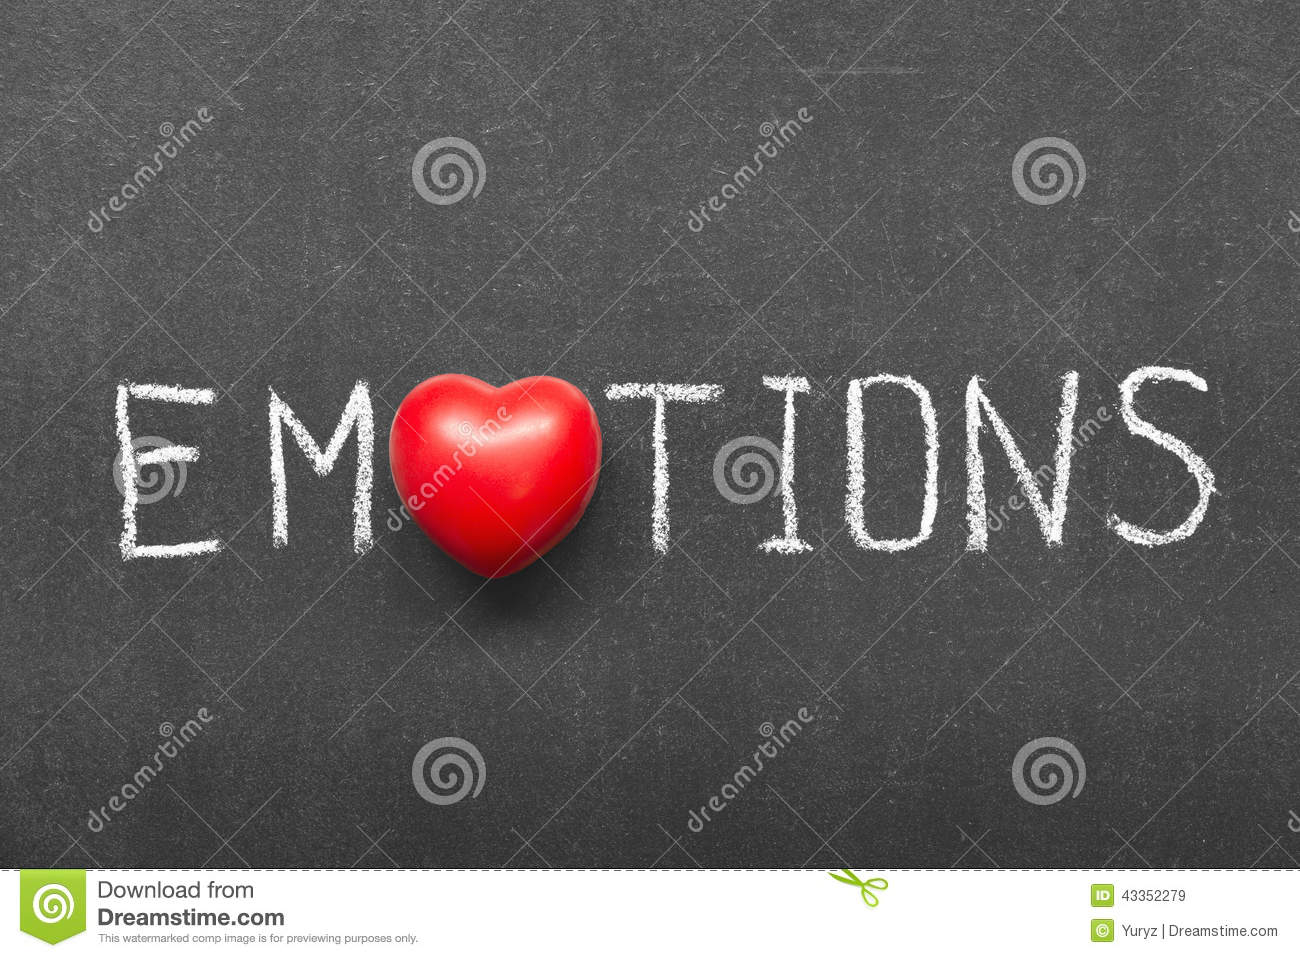 Emotions word handwritten on chalkboard with heart symbol instead of O ...